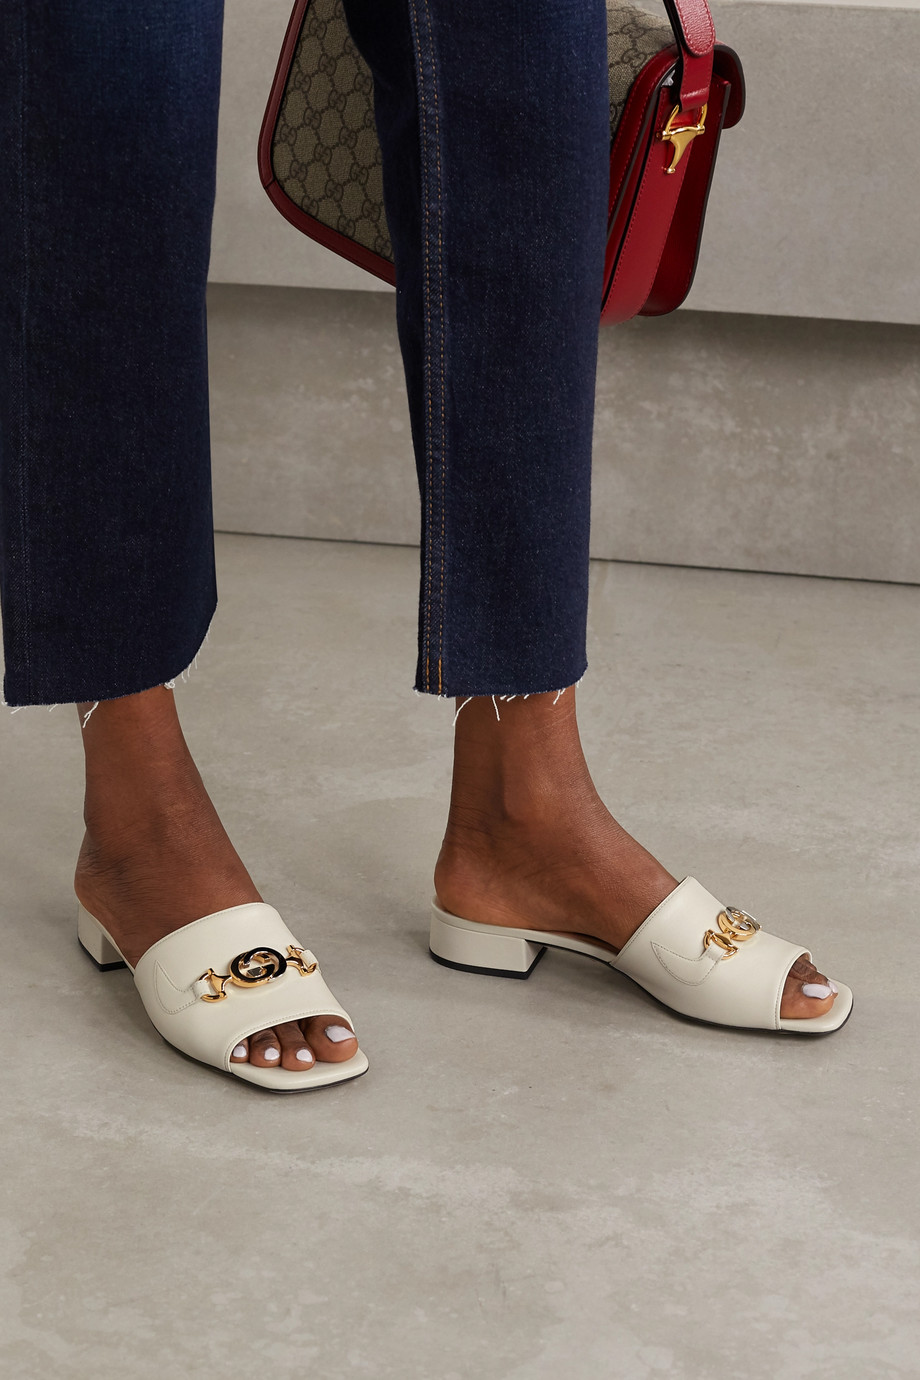 Gucci Zumi embellished leather mules